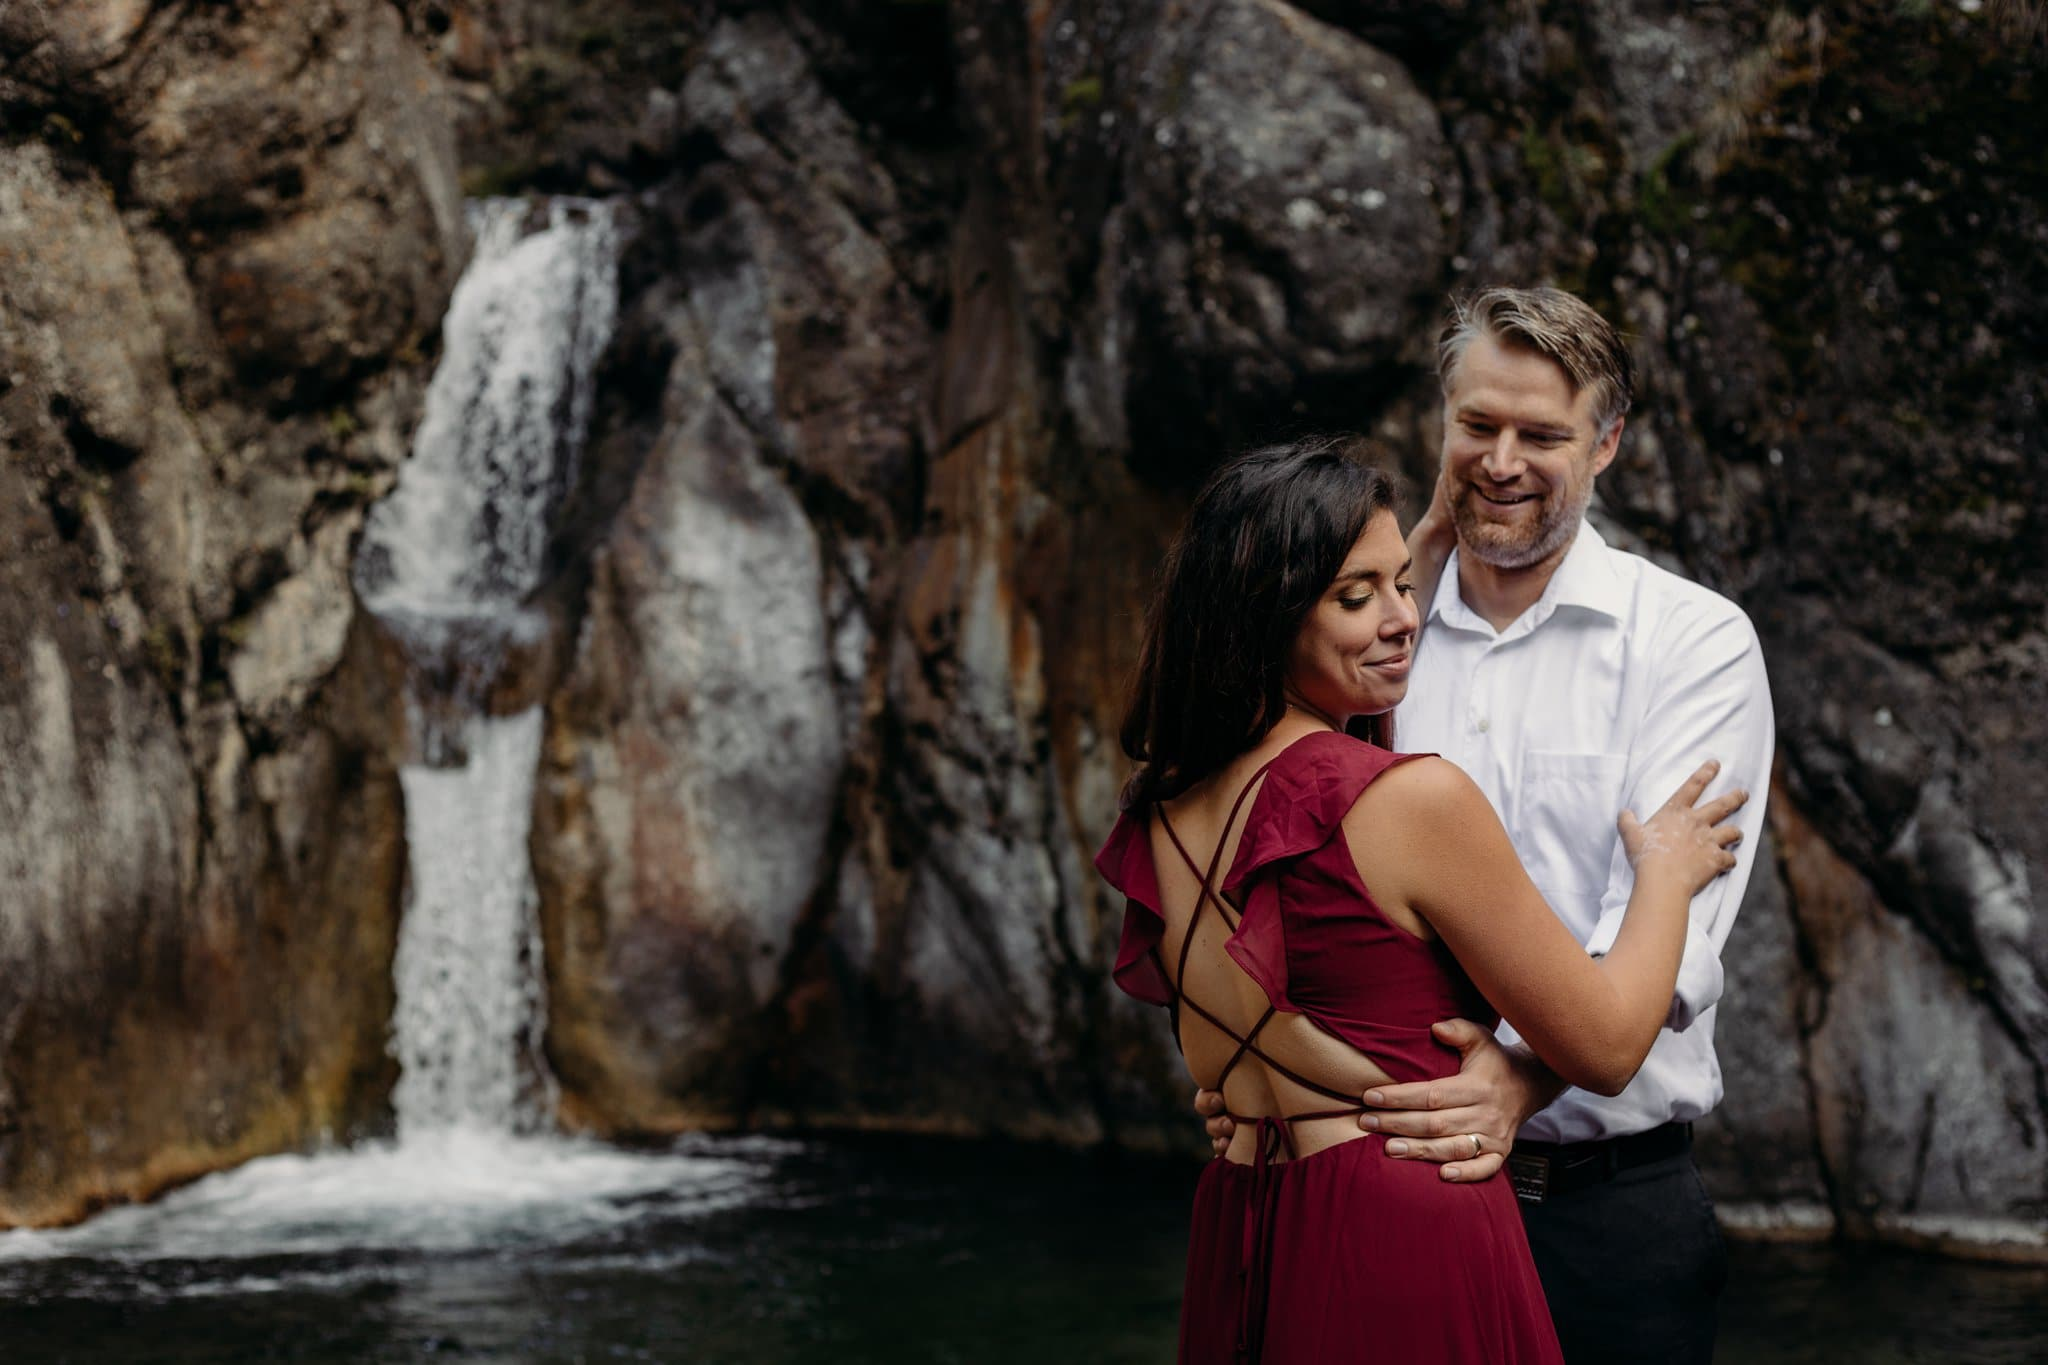 AshleyDaphnePhotography Calgary Photographer Wedding Engagement Couple Rocky Mountains Barrier Lake_0025.jpg